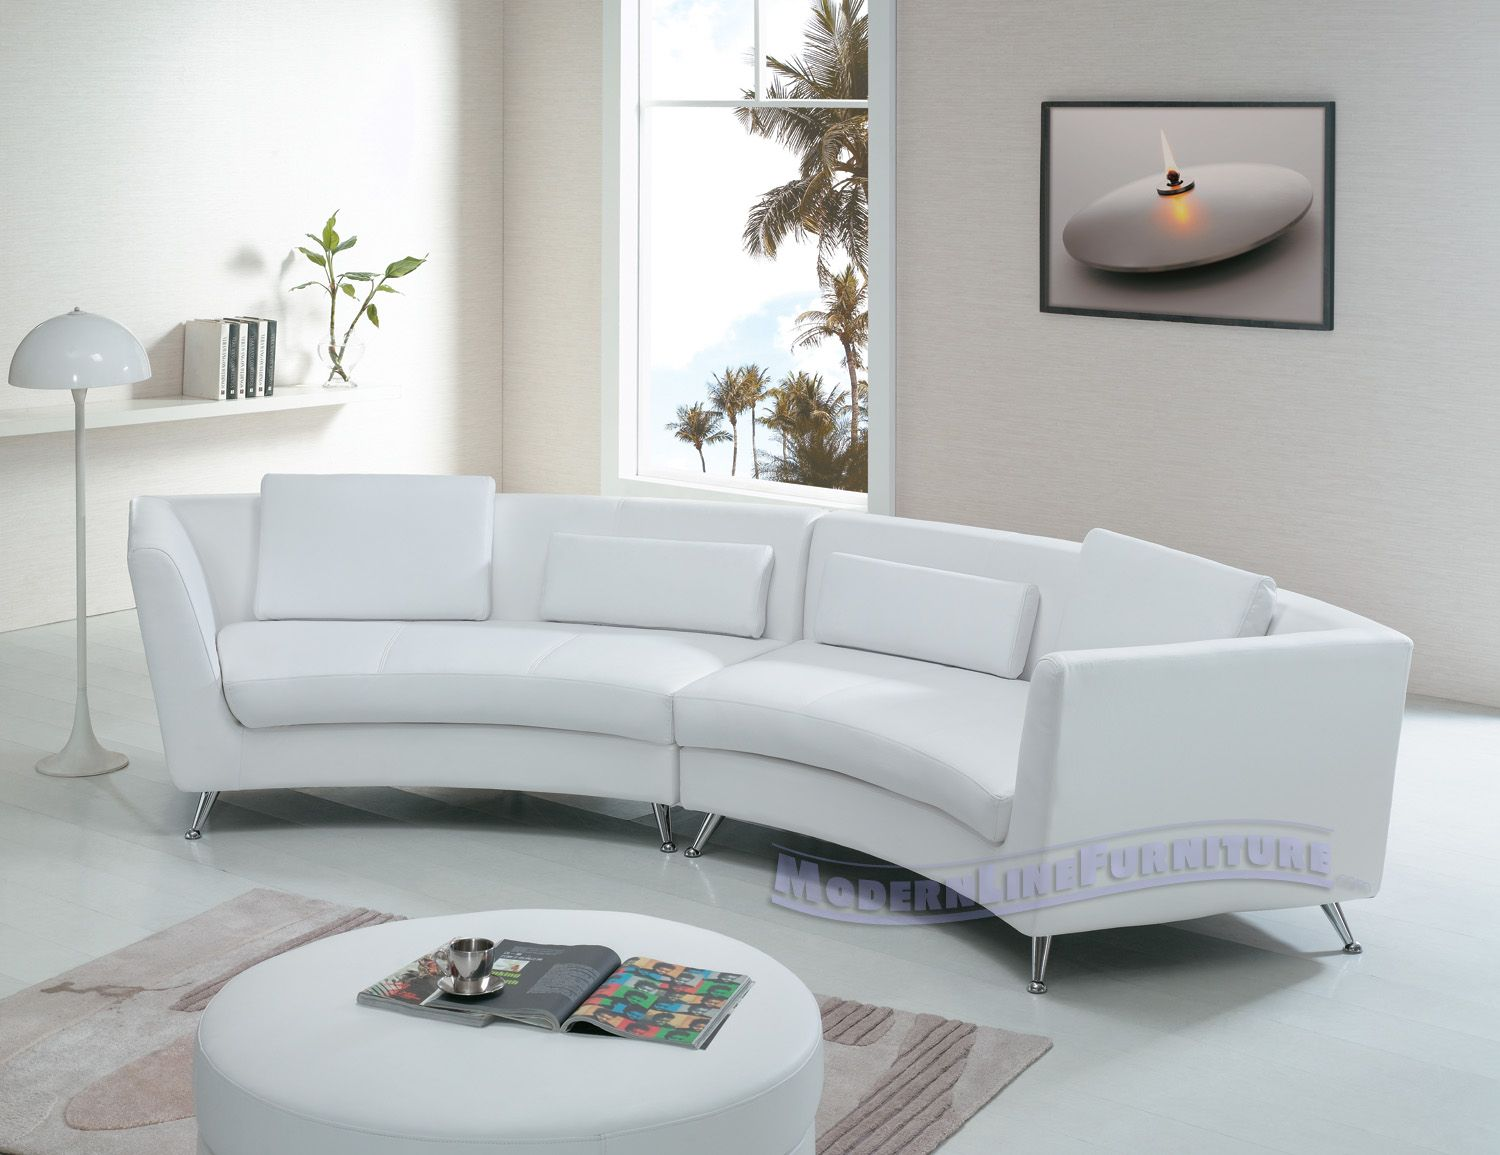 Oval Couch Sofa Curved Leather Sofas Curved Couches White